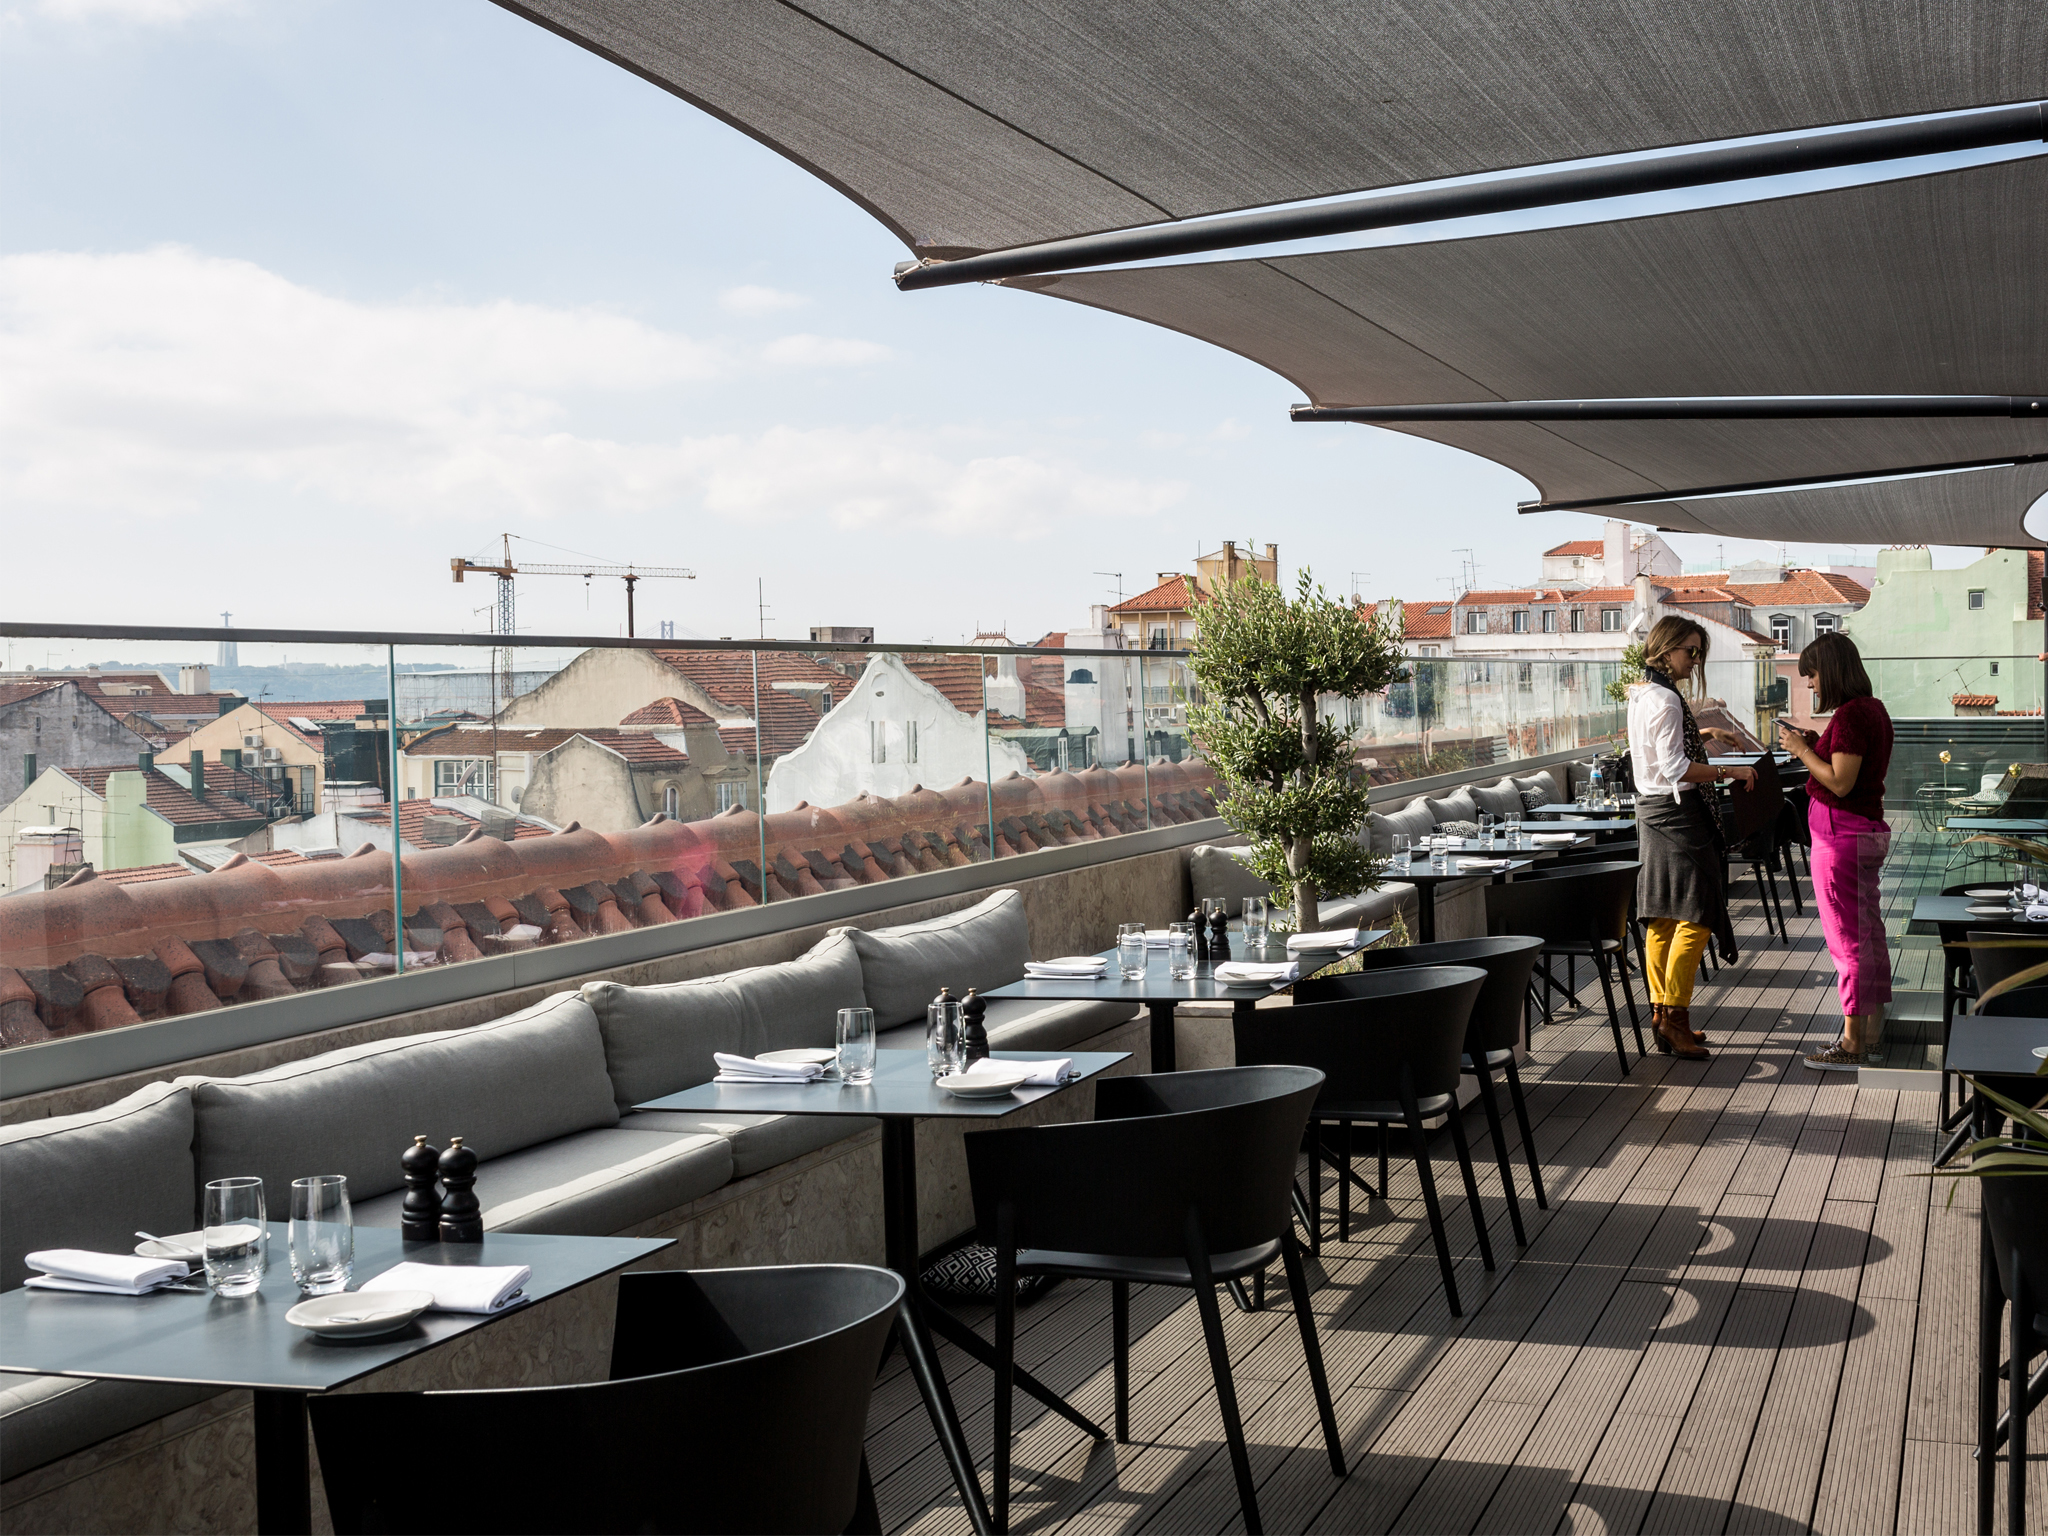 Lumi Rooftop Bar & Restaurant